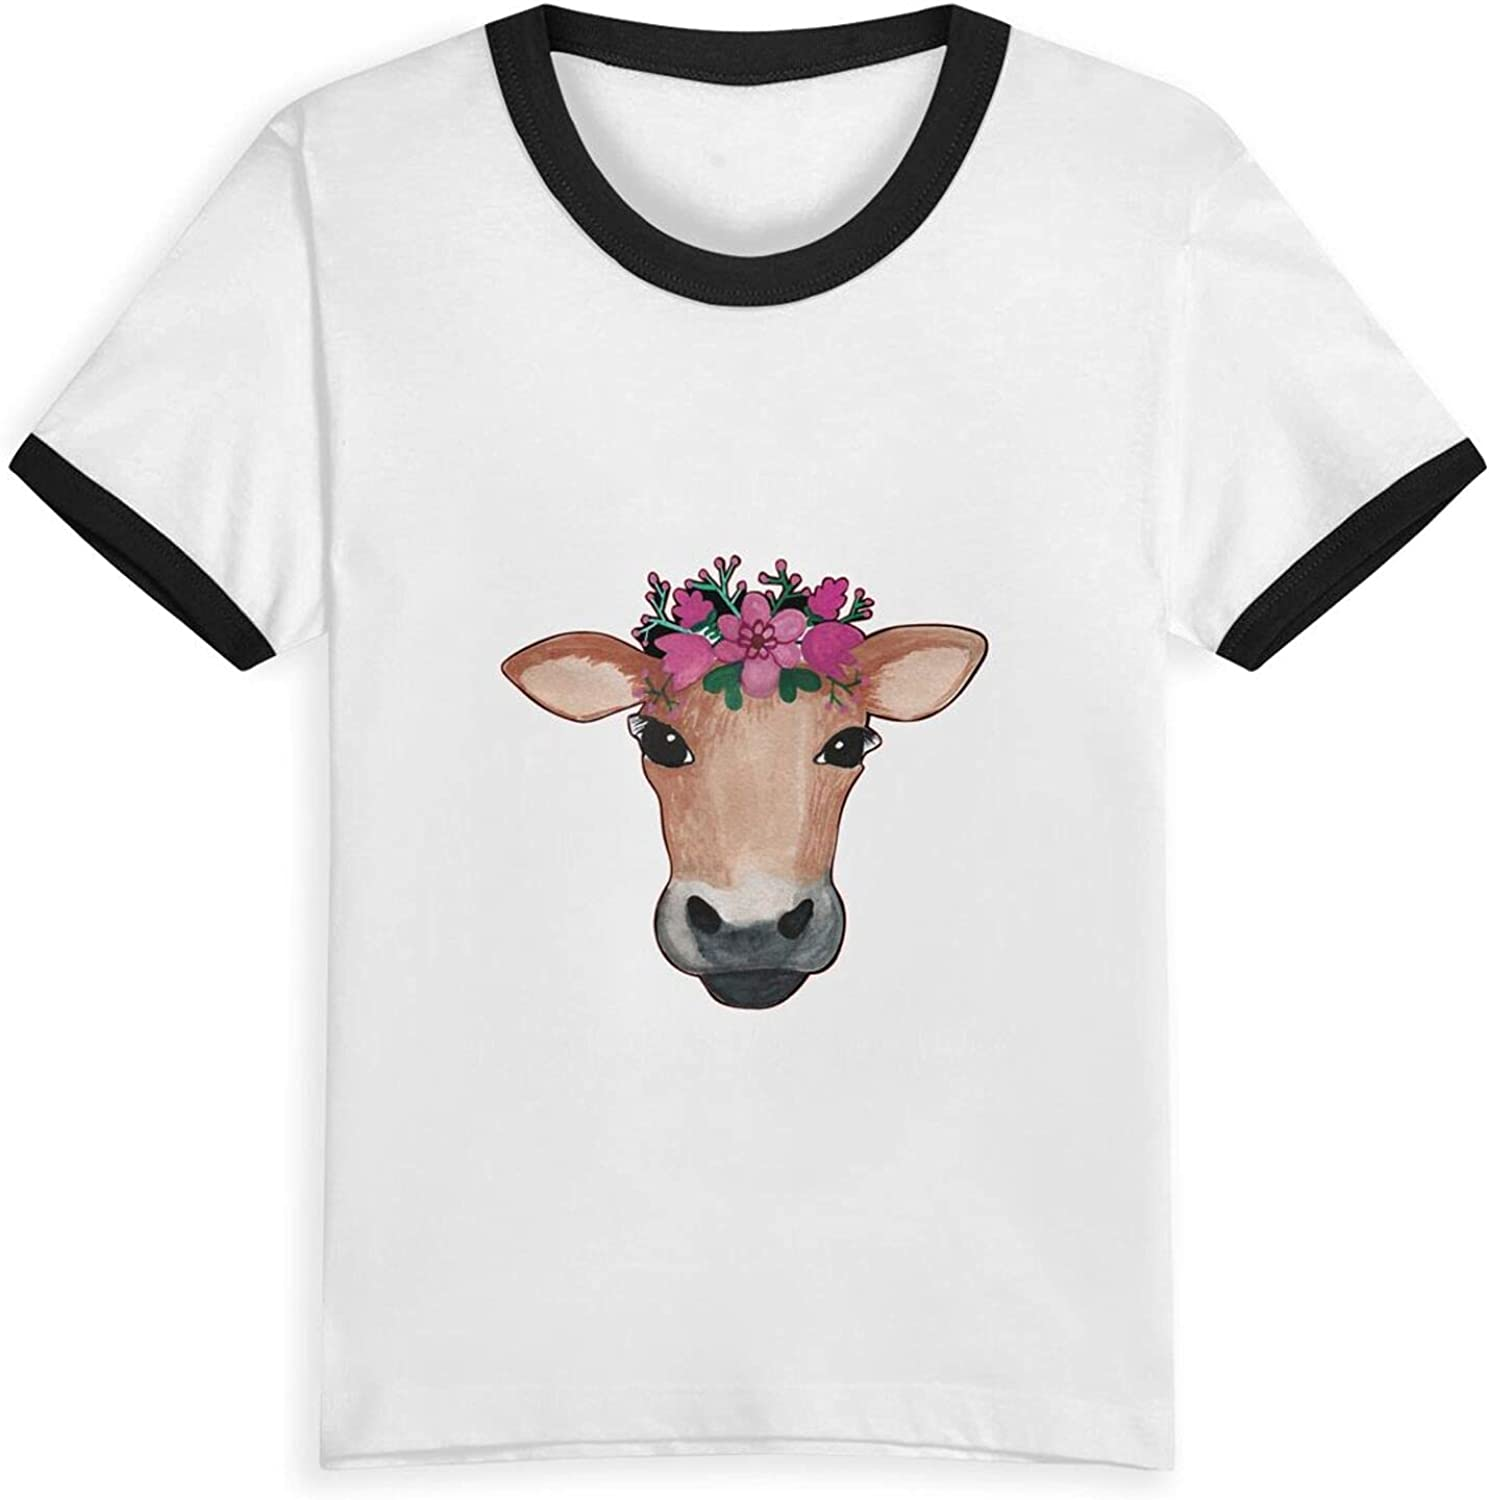 Not Your Mom Not Your Milk T-Shirts Novelty for Youth Tees with Cool Designs